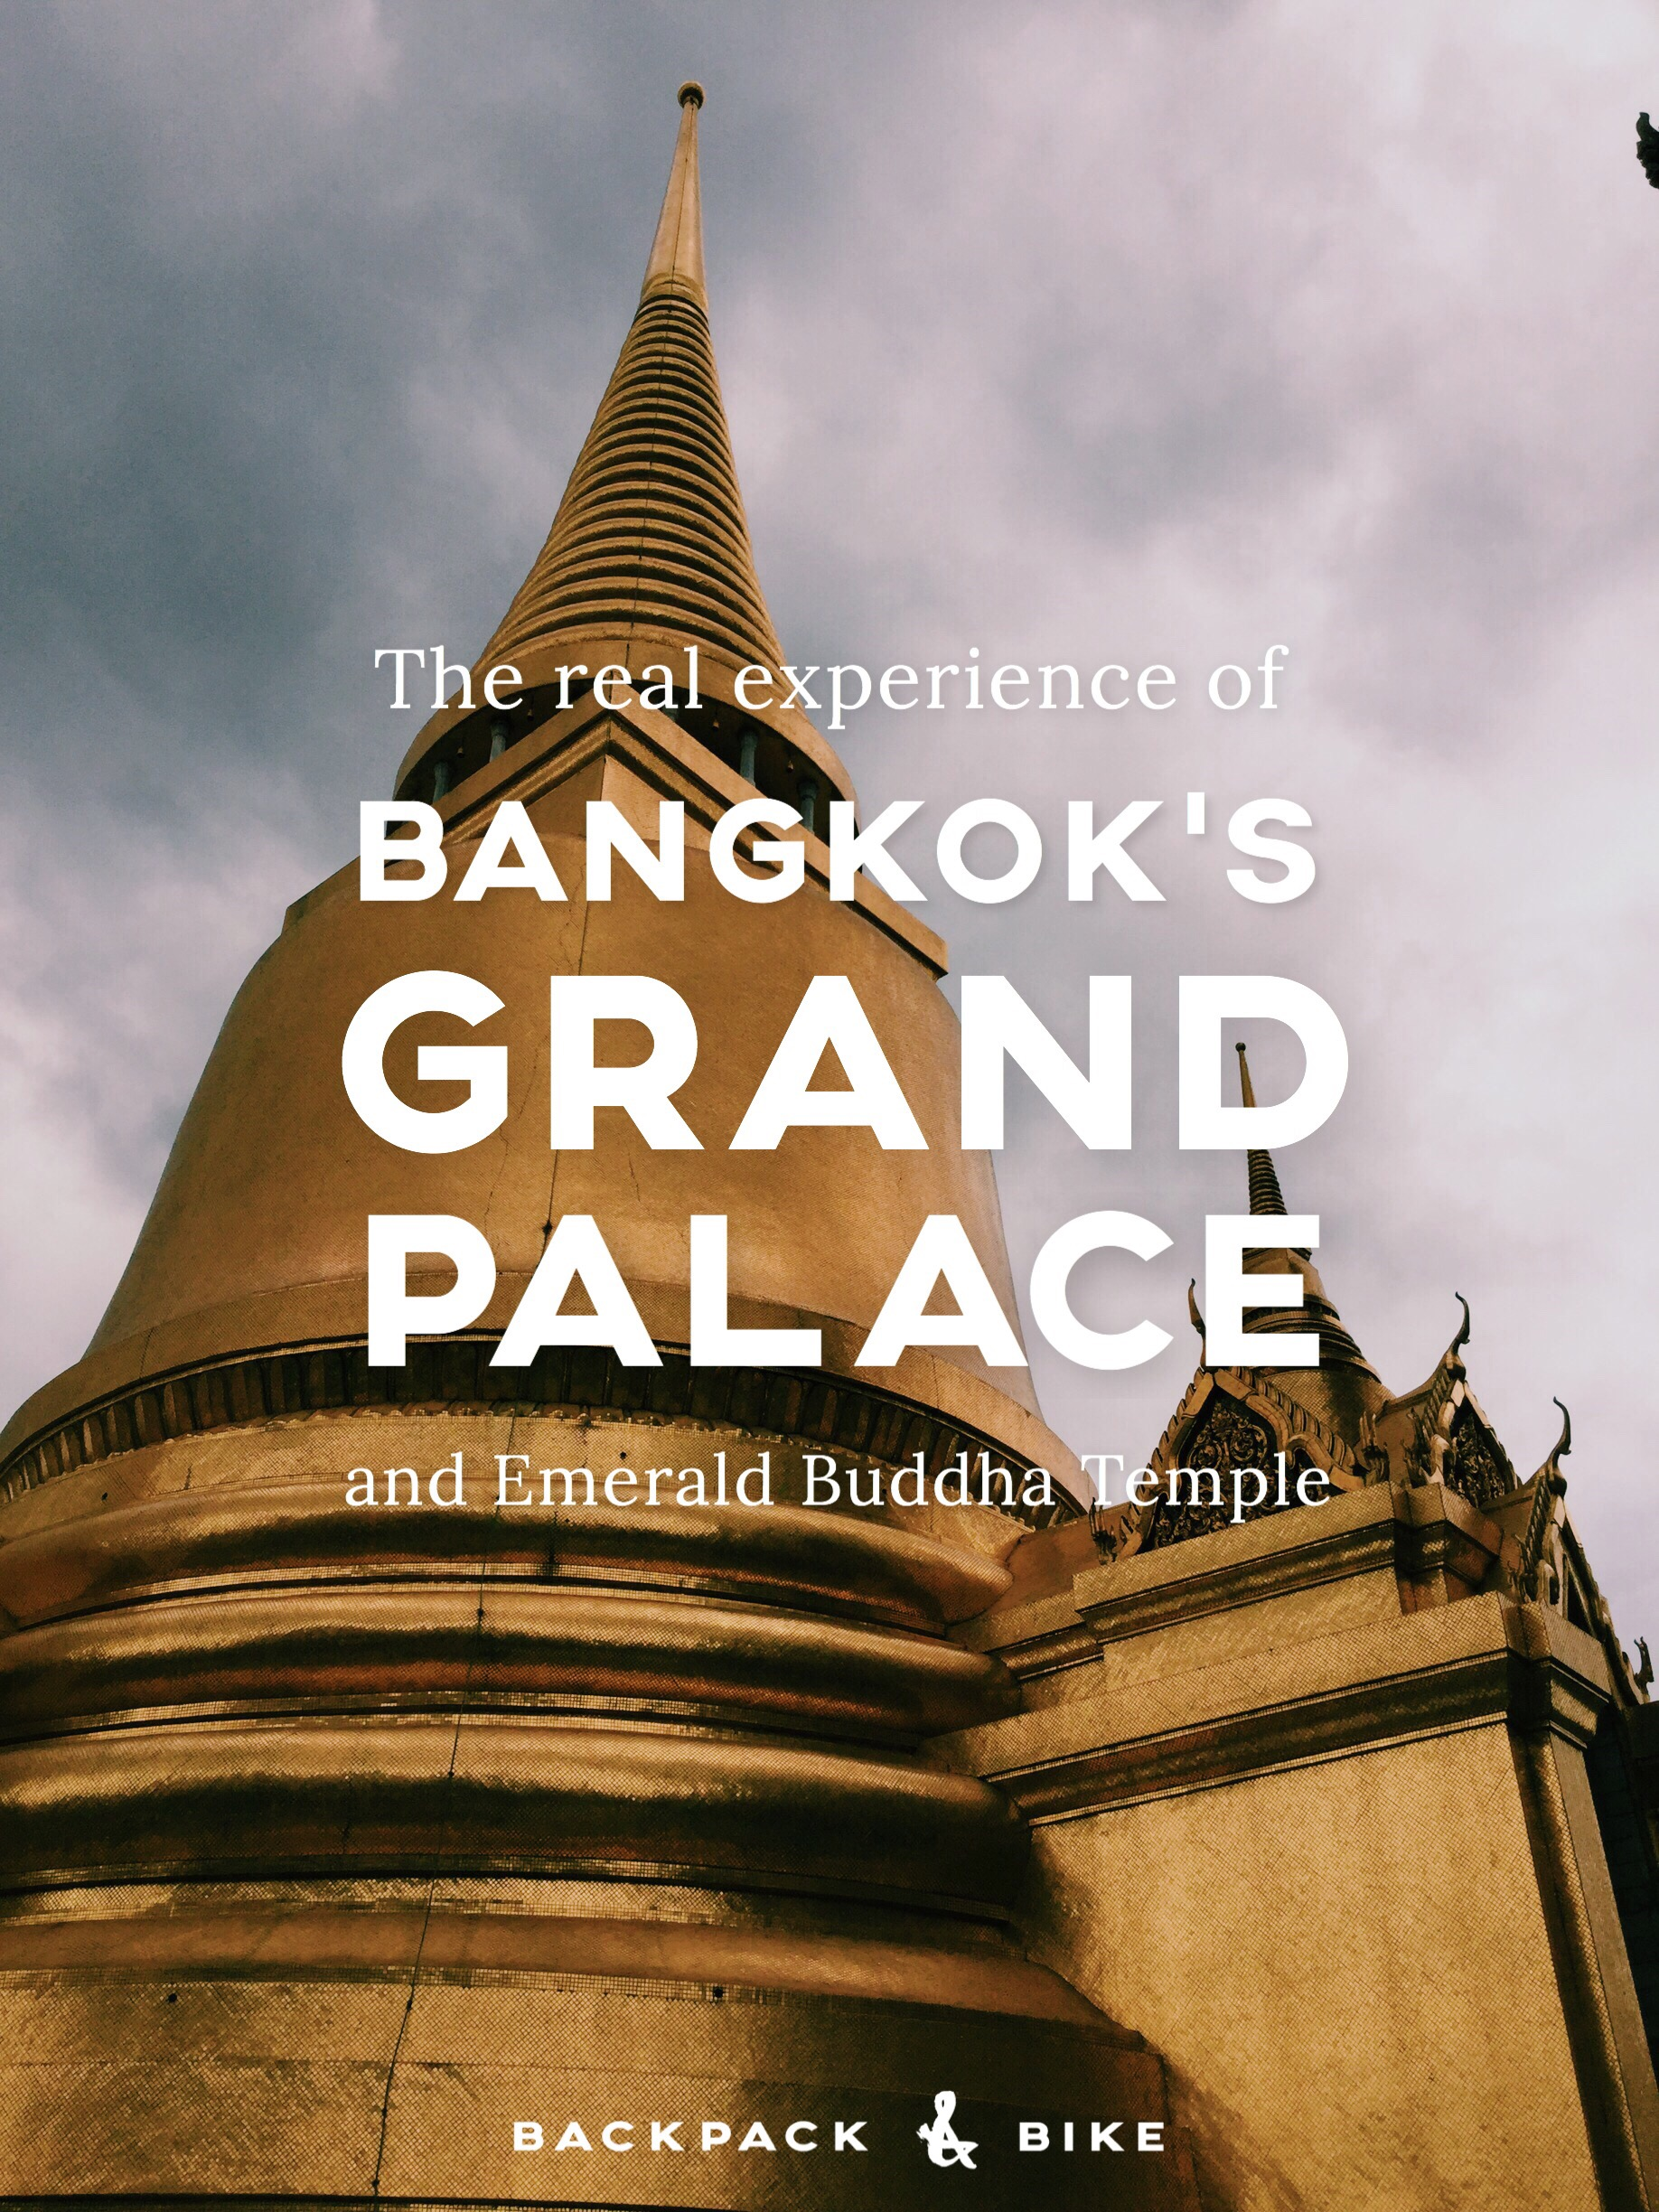 The real experience of Bangkok's Grand Palace and Emerald Buddha Temple